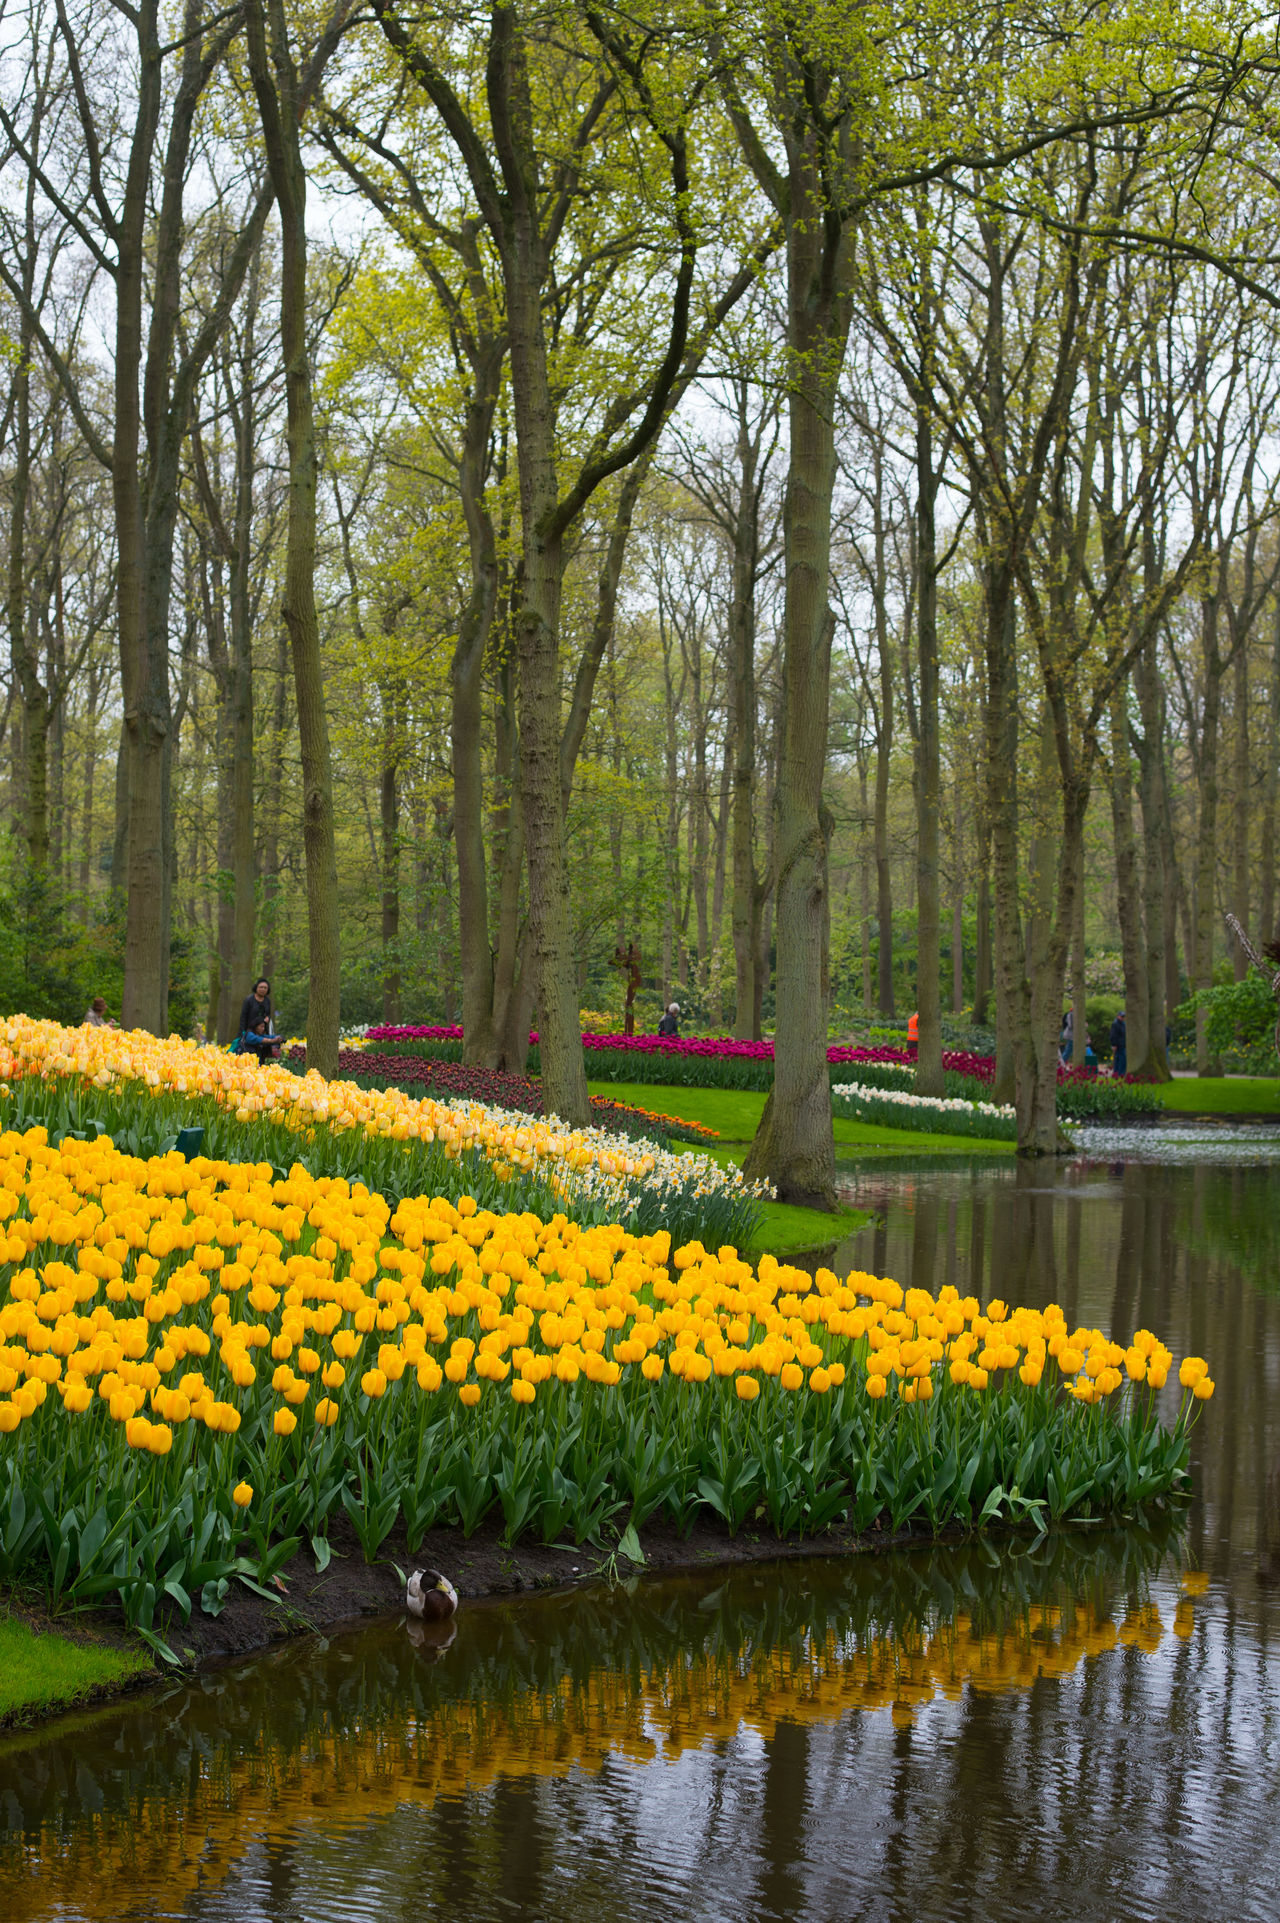 Beauty In Nature Day Flower Flower Head Flowerbed Fragility Freshness Growth Landscape Nature Neighborhood Map No People Outdoors Plant Scenics Springtime Tranquil Scene Tranquility Tree Water Yellow